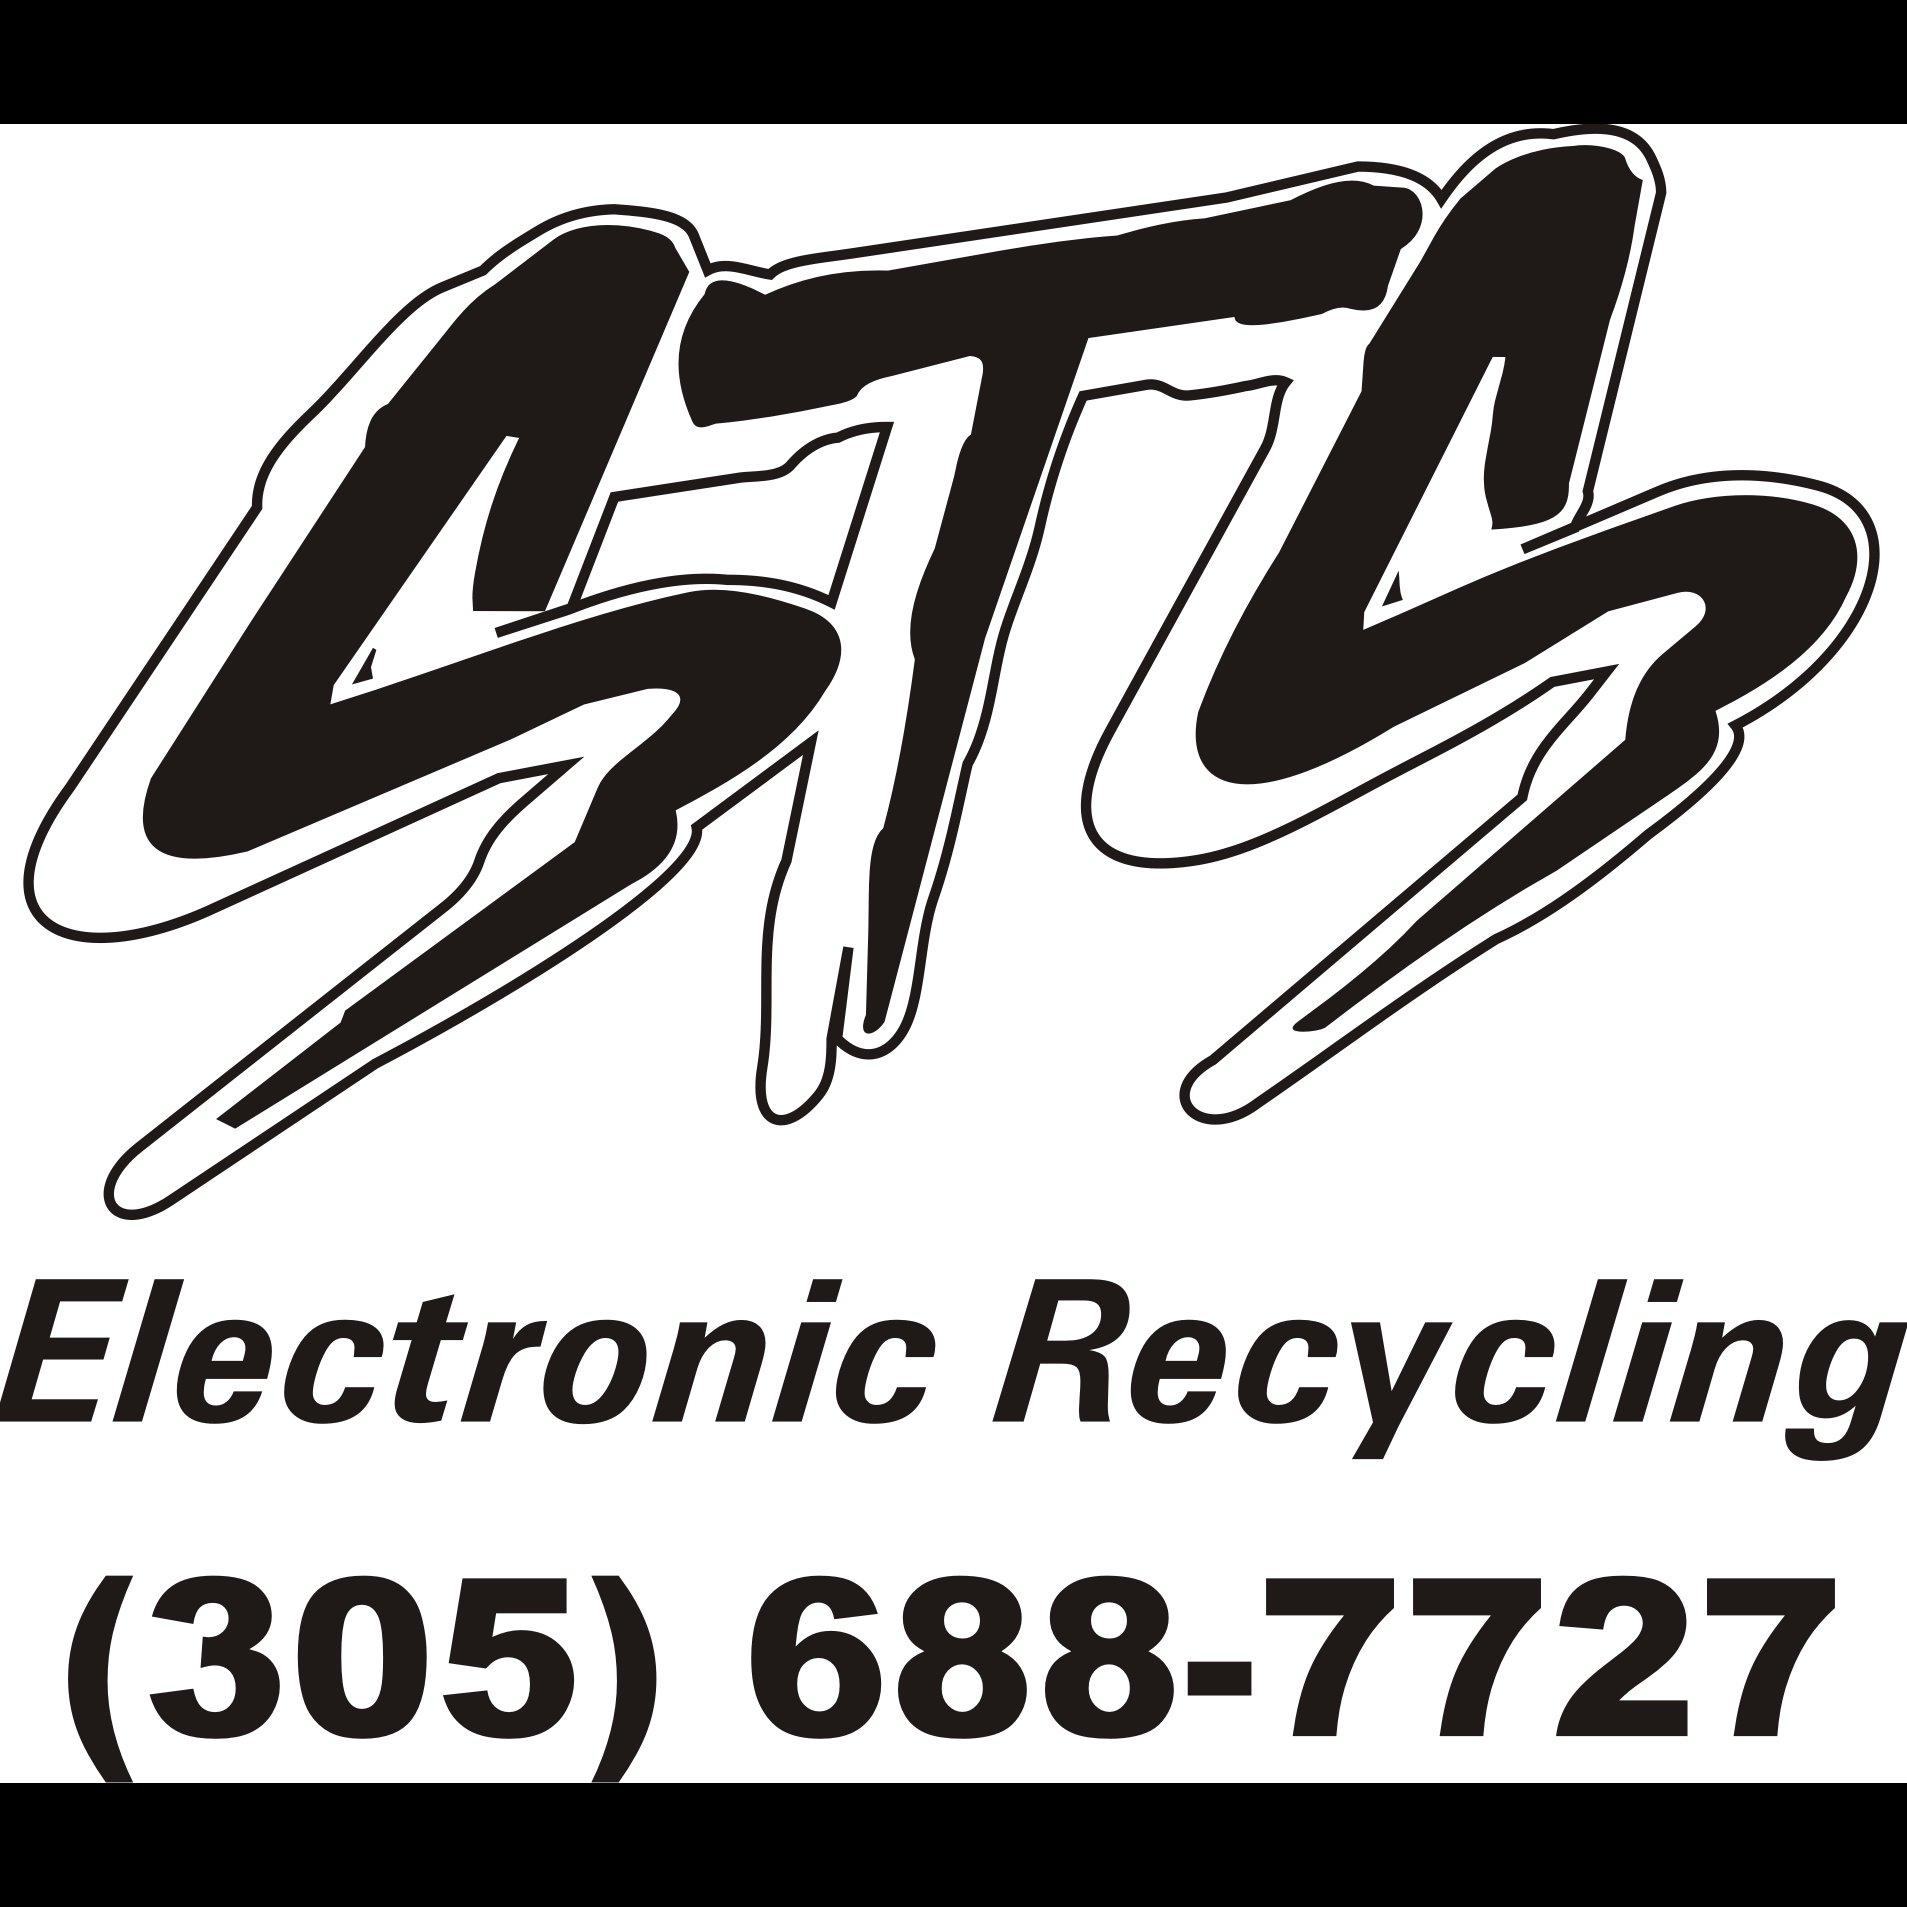 STS Florida Electronic Recycling, Inc.